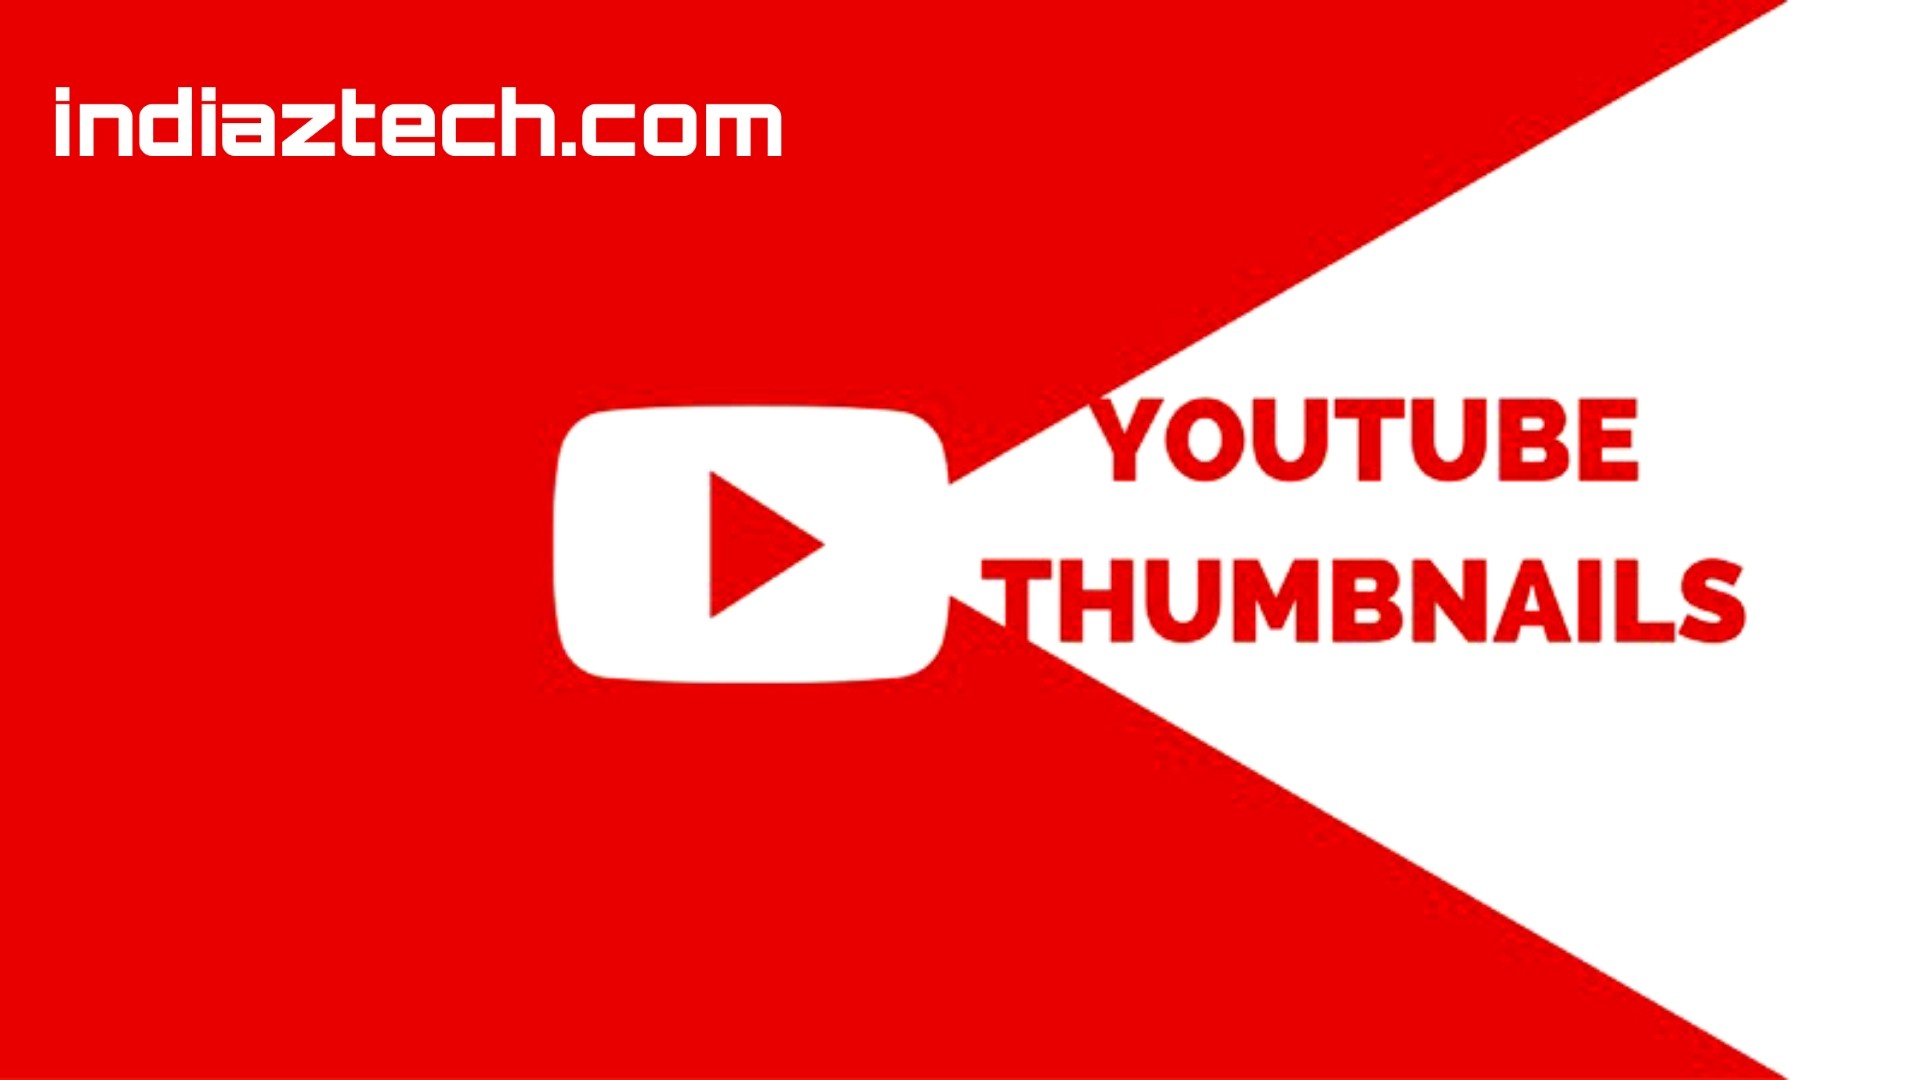 How to Grow Your YouTube Channel, Get Free 1k Subs, 4000 Watch time Views to Monetize